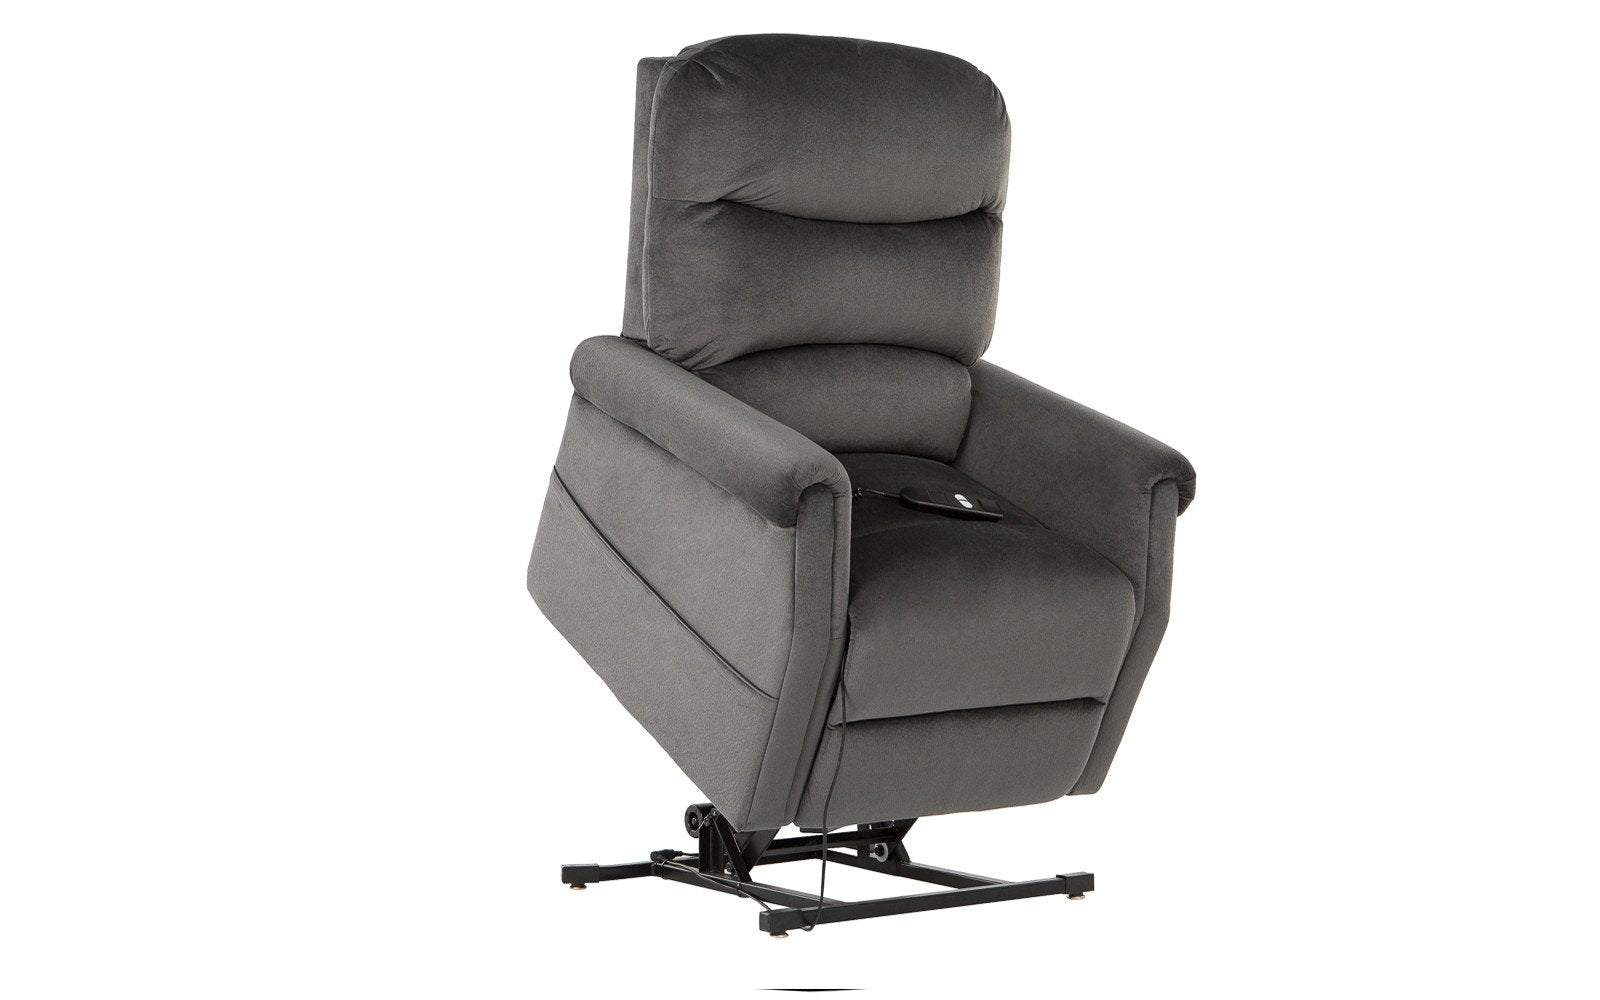 ... Up Classic Power Lift Recliner Fabric In Dark Grey  sc 1 st  Sofamania & Swivel Rocker Recliner |John Bonded Leather Recliner Rocker Swivel ... islam-shia.org